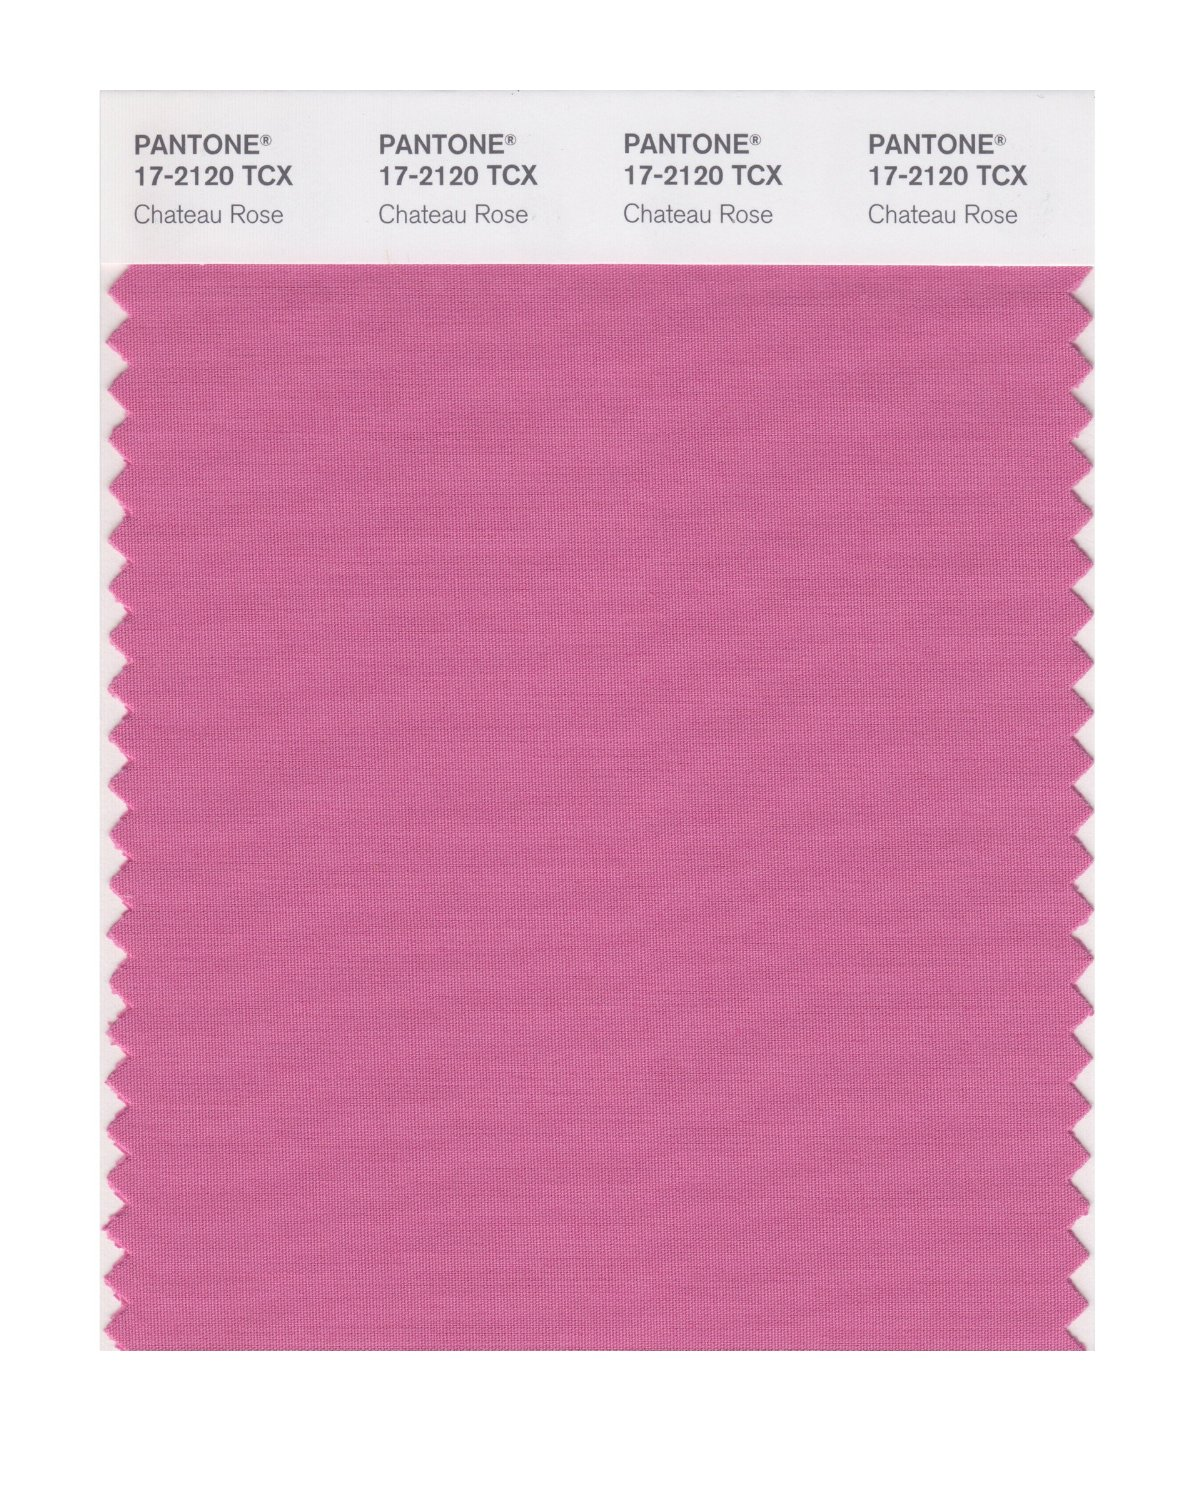 Pantone Smart Swatch 17-2120 Chateau Rose